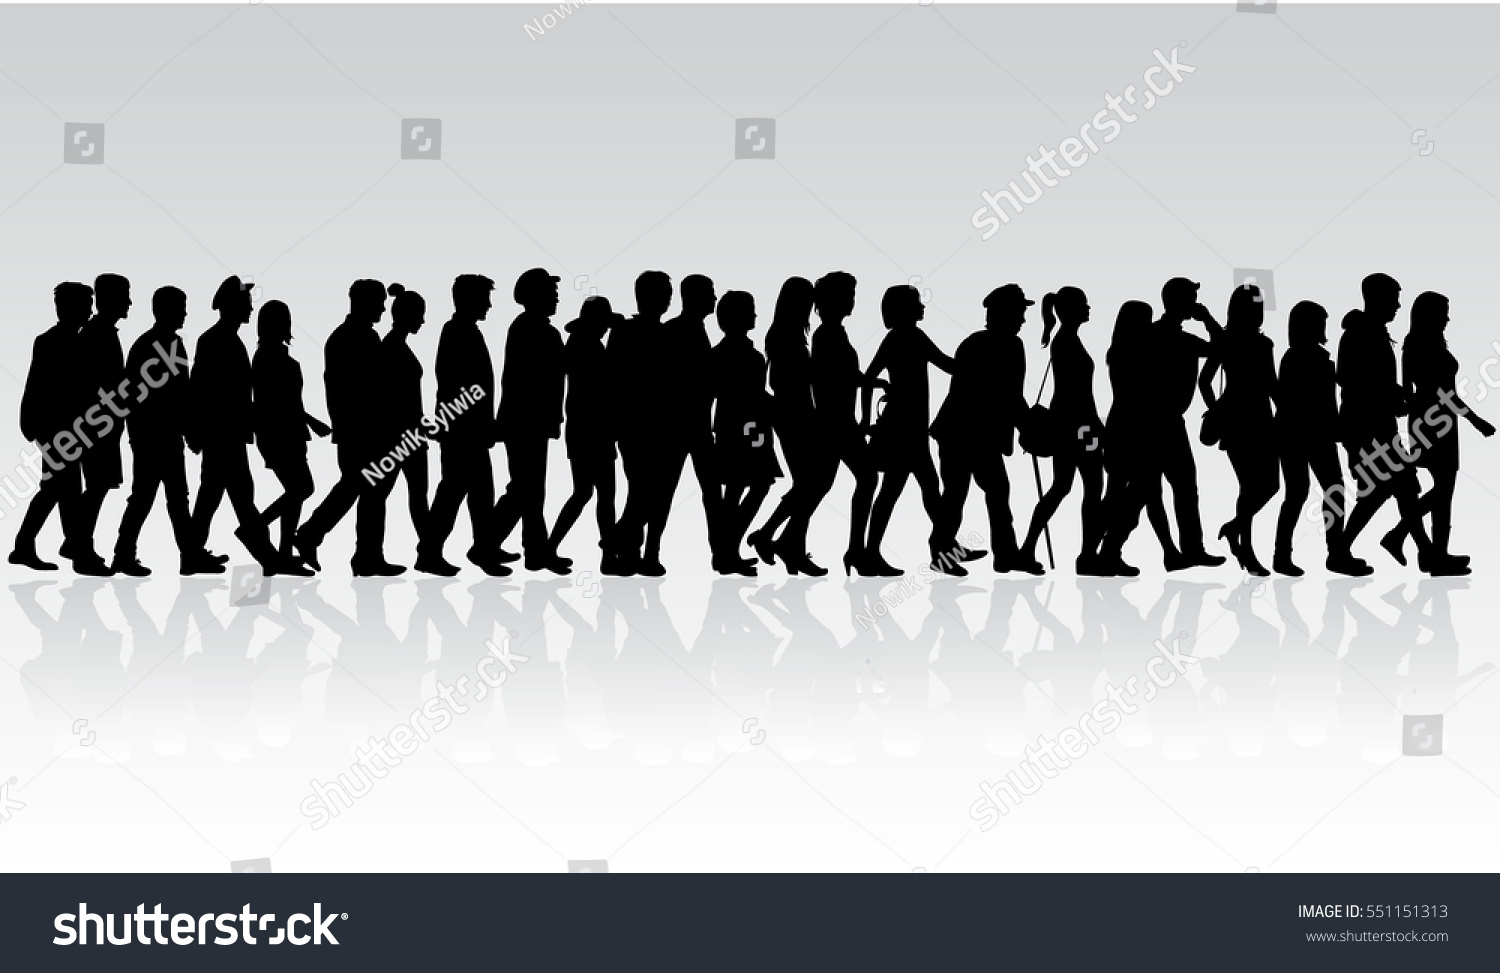 Standing crowd silhouette - photo#44